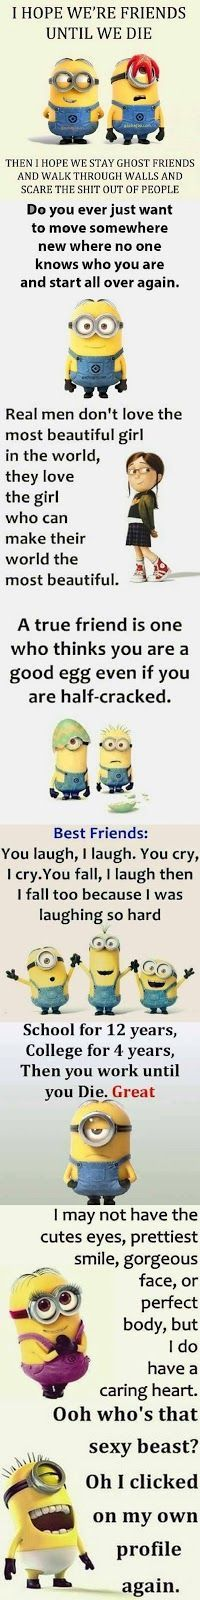 Top 8 Funny Memes By The #Minions... - 8, Funny, funny minion quotes, Memes, Minion Quote, Minions, Top - Minion-Quotes.com